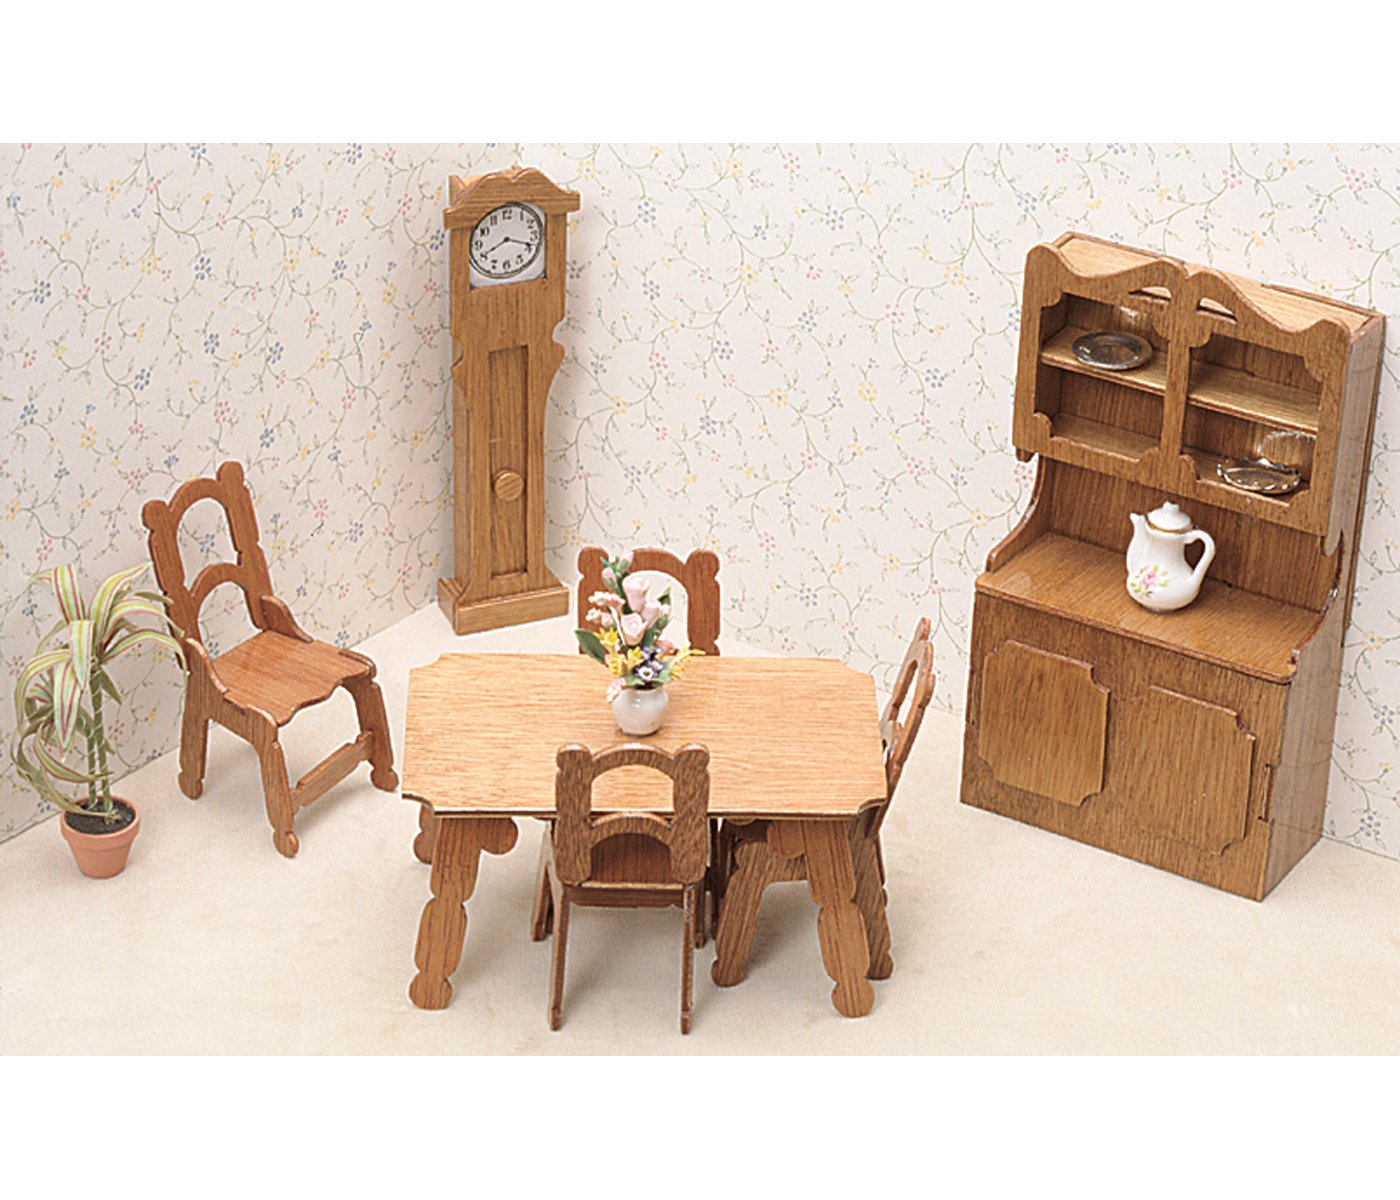 Amazon Greenleaf Dollhouse Furniture Kit Dining Room Arts Crafts Sewing